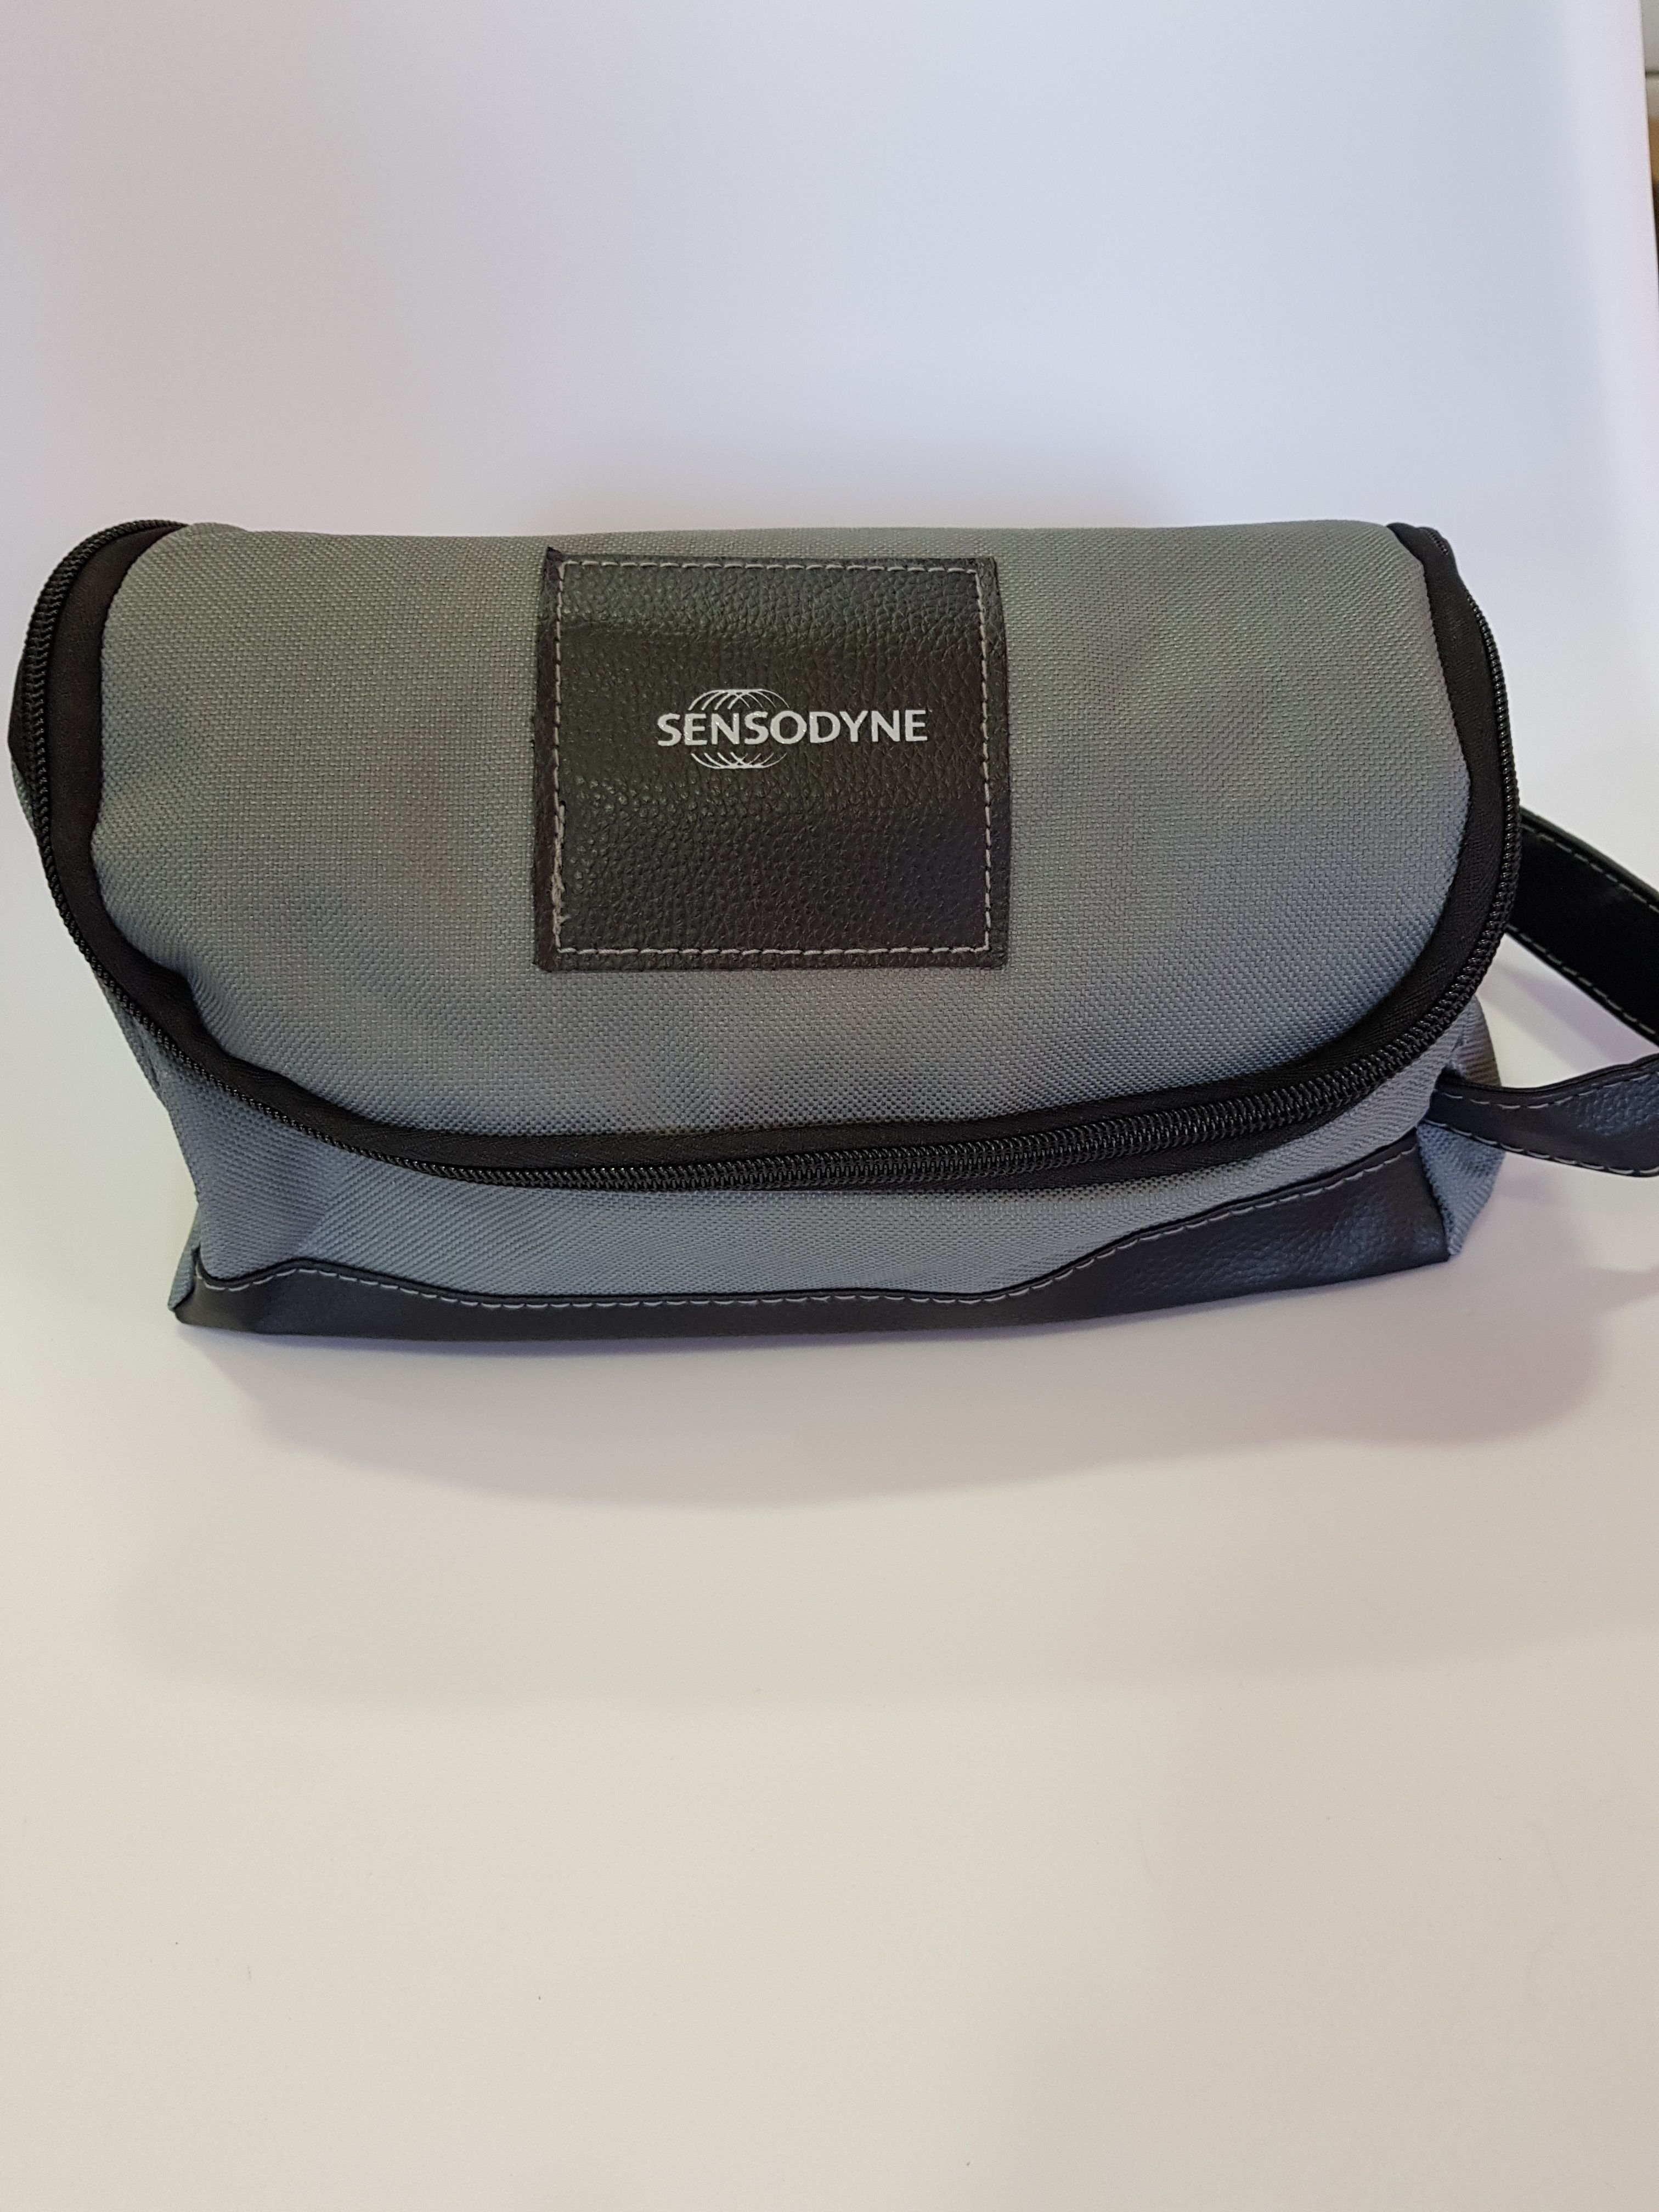 d72d80550a toiletry bag for Sensodyne Promo Gifts